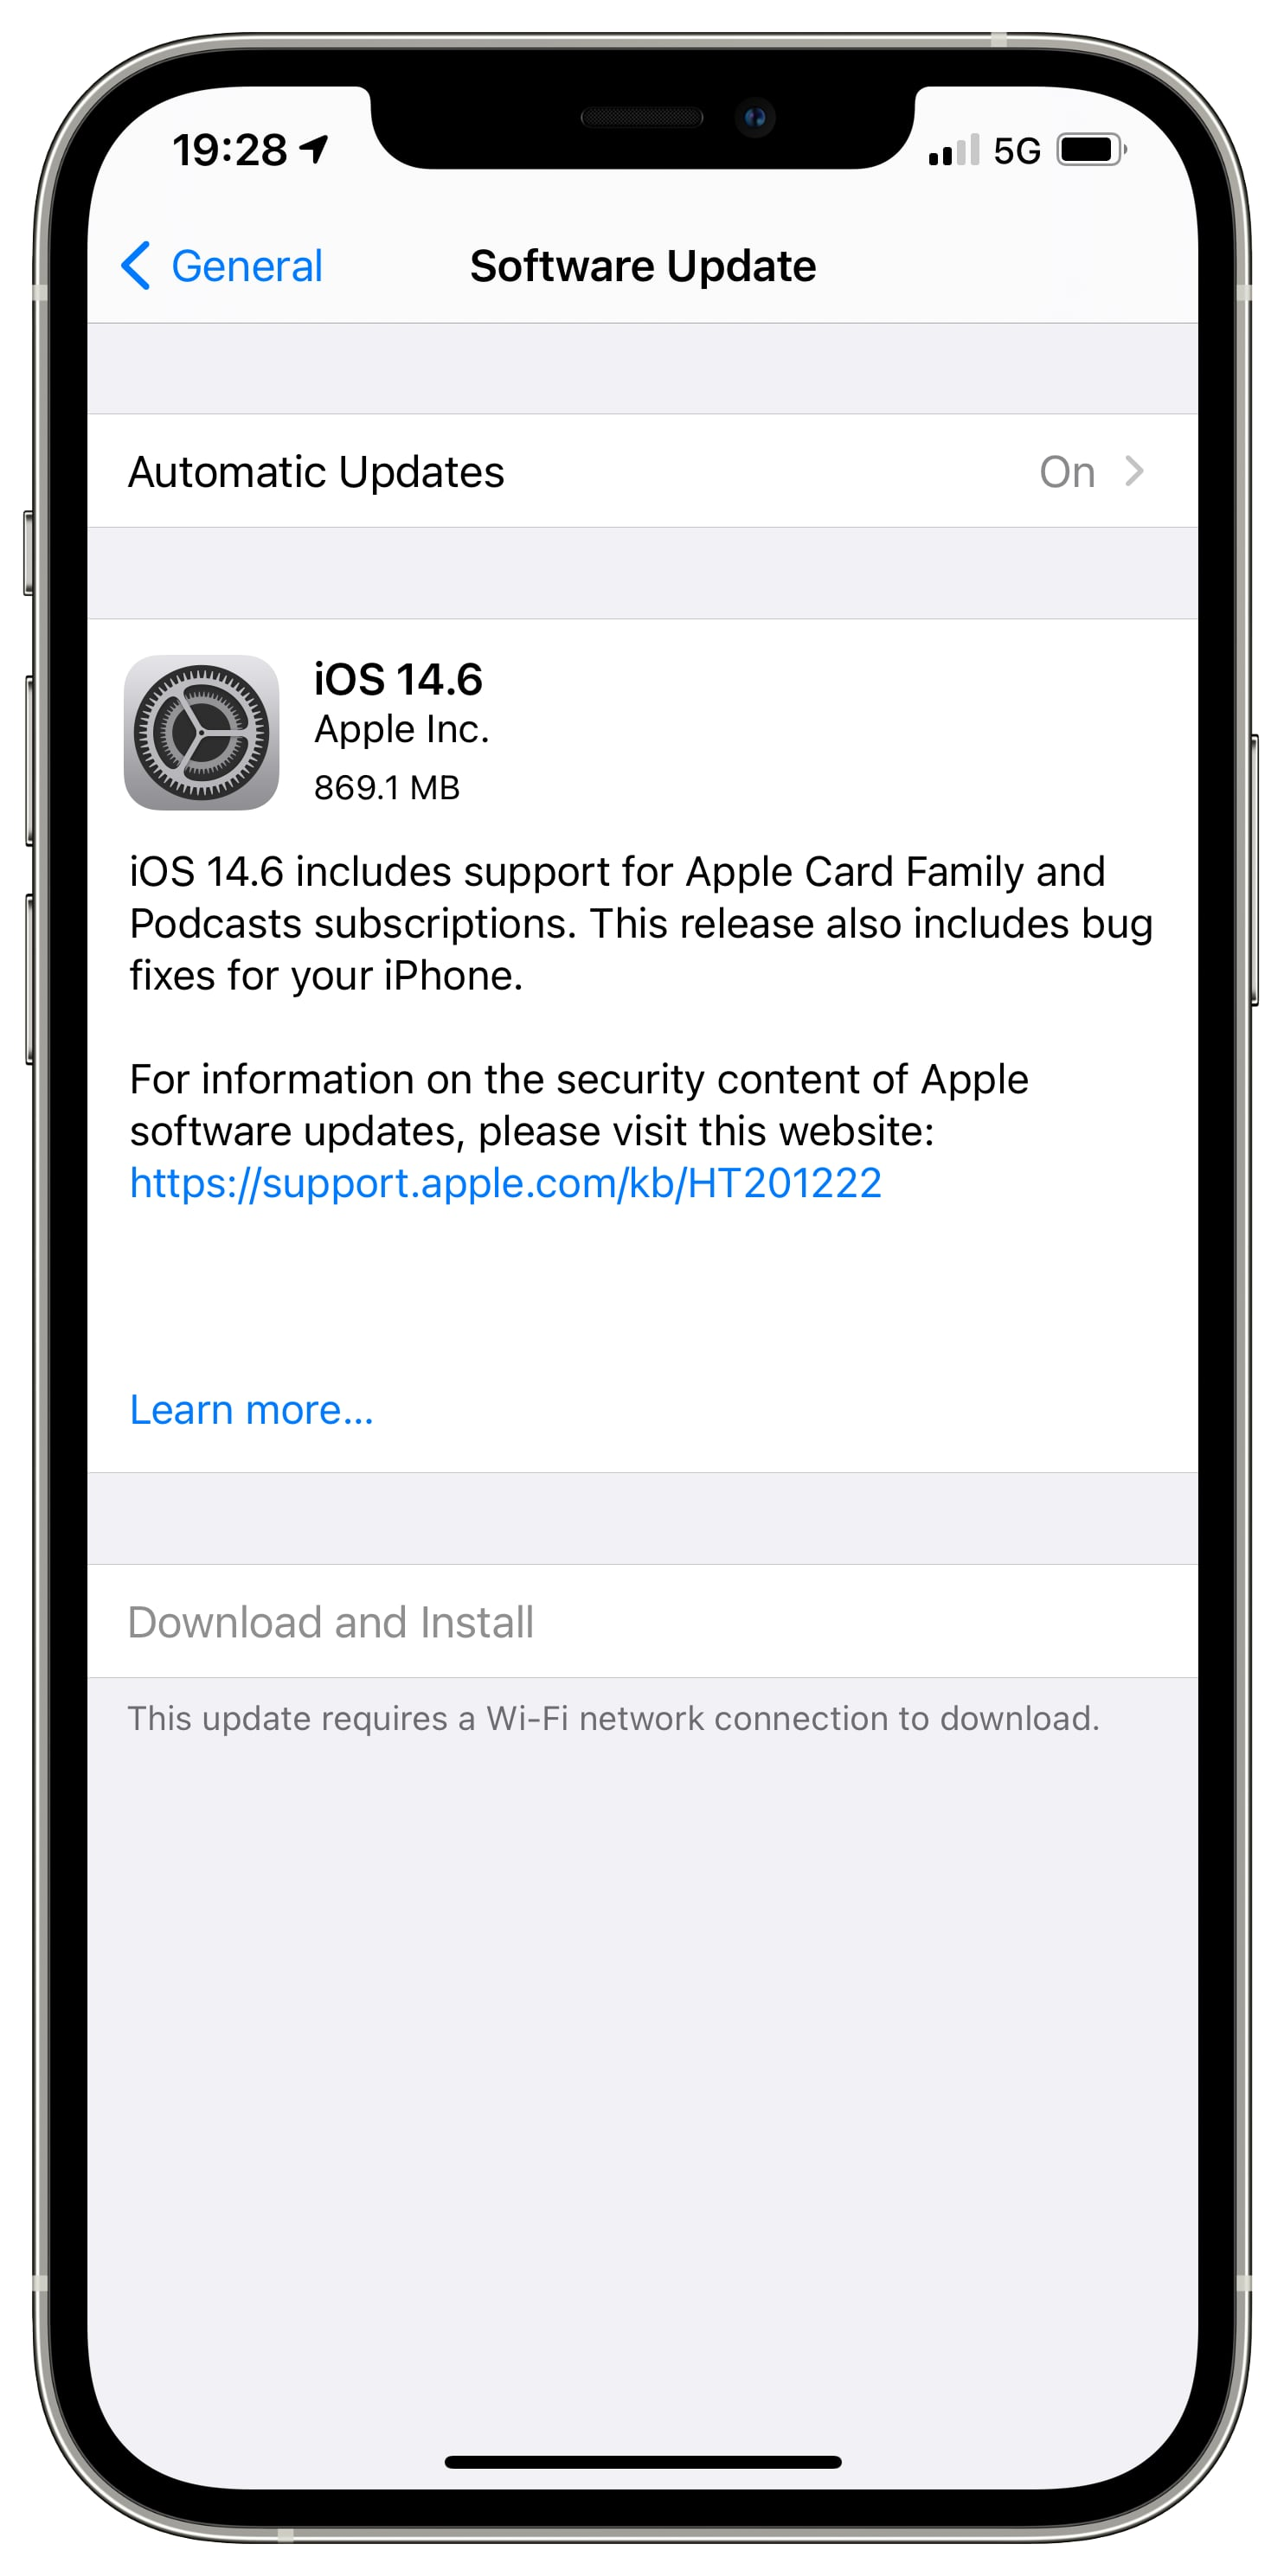 An iPhone screenshot showing the iOS 14.6 prompt in the Software Update screen within Settings, with a warning saying current 5G data settings restrict iOS software updates to Wi-Fi